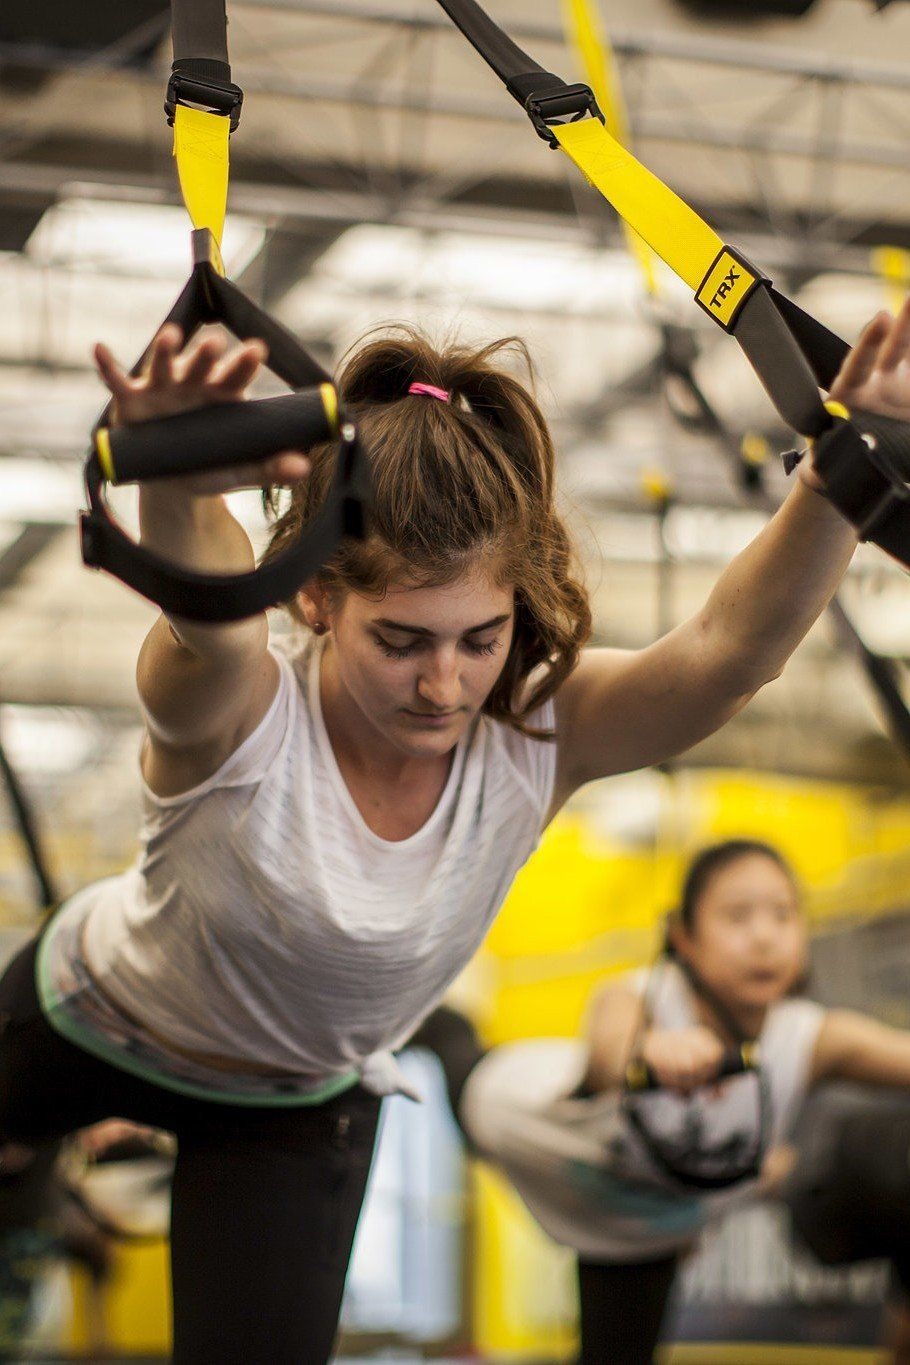 Not Gonna Lie, This 20-Minute Full-Body TRX Circuit Is Going to Kick Your Ass